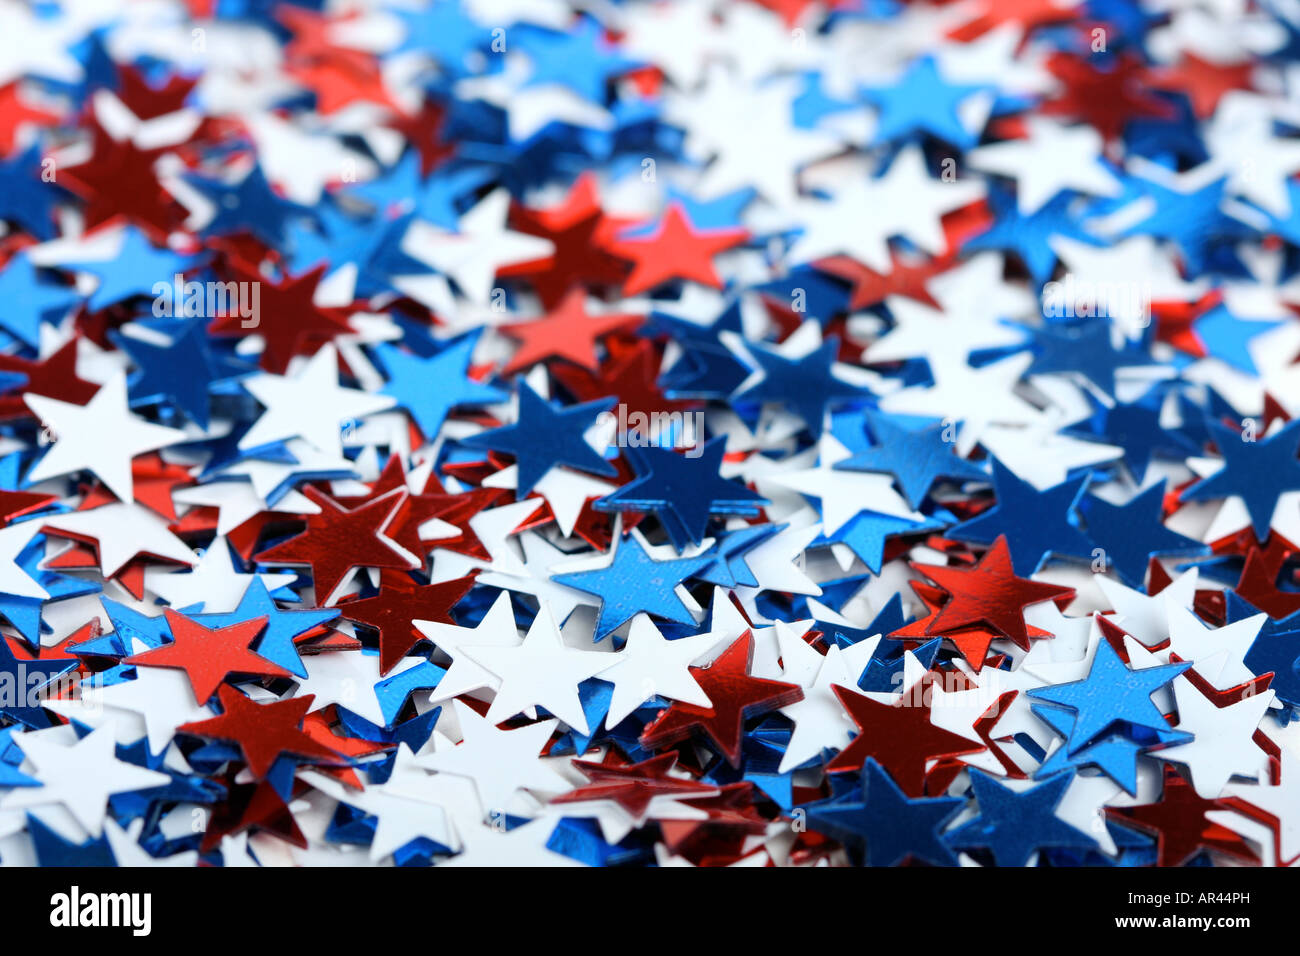 Star shaped confetti perfect as a election or 4th of july background focus on stars in front - Stock Image